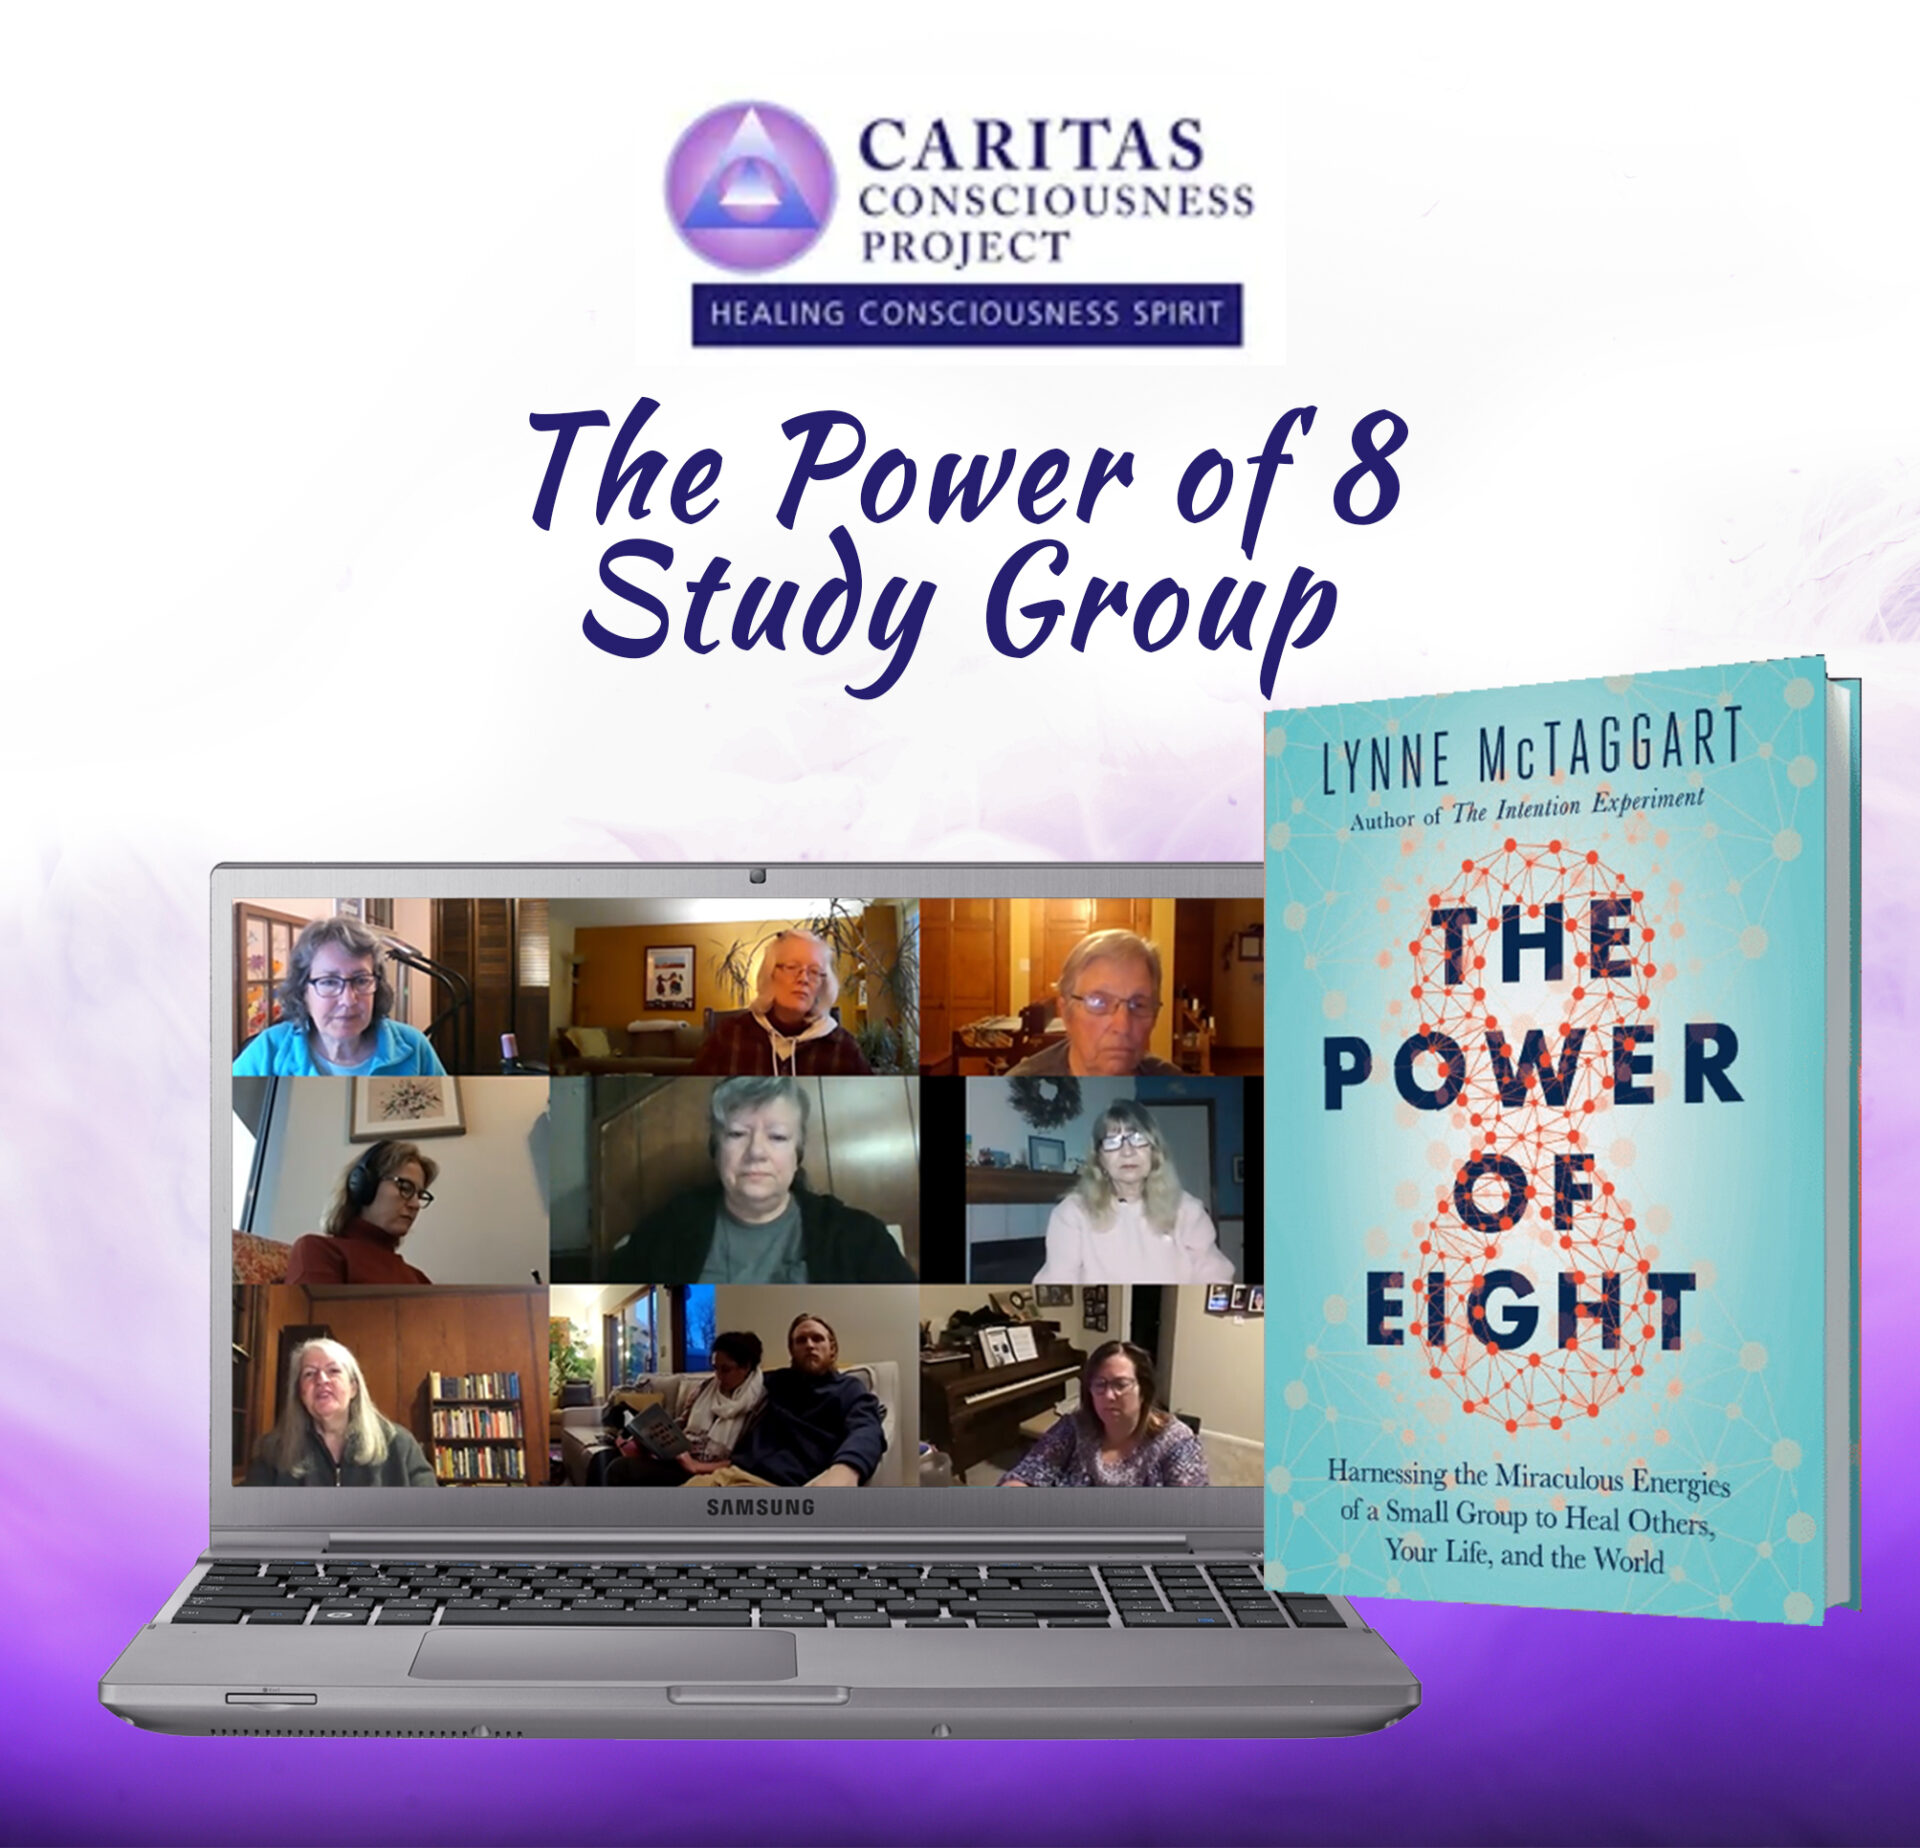 The Power of 8 Study Group